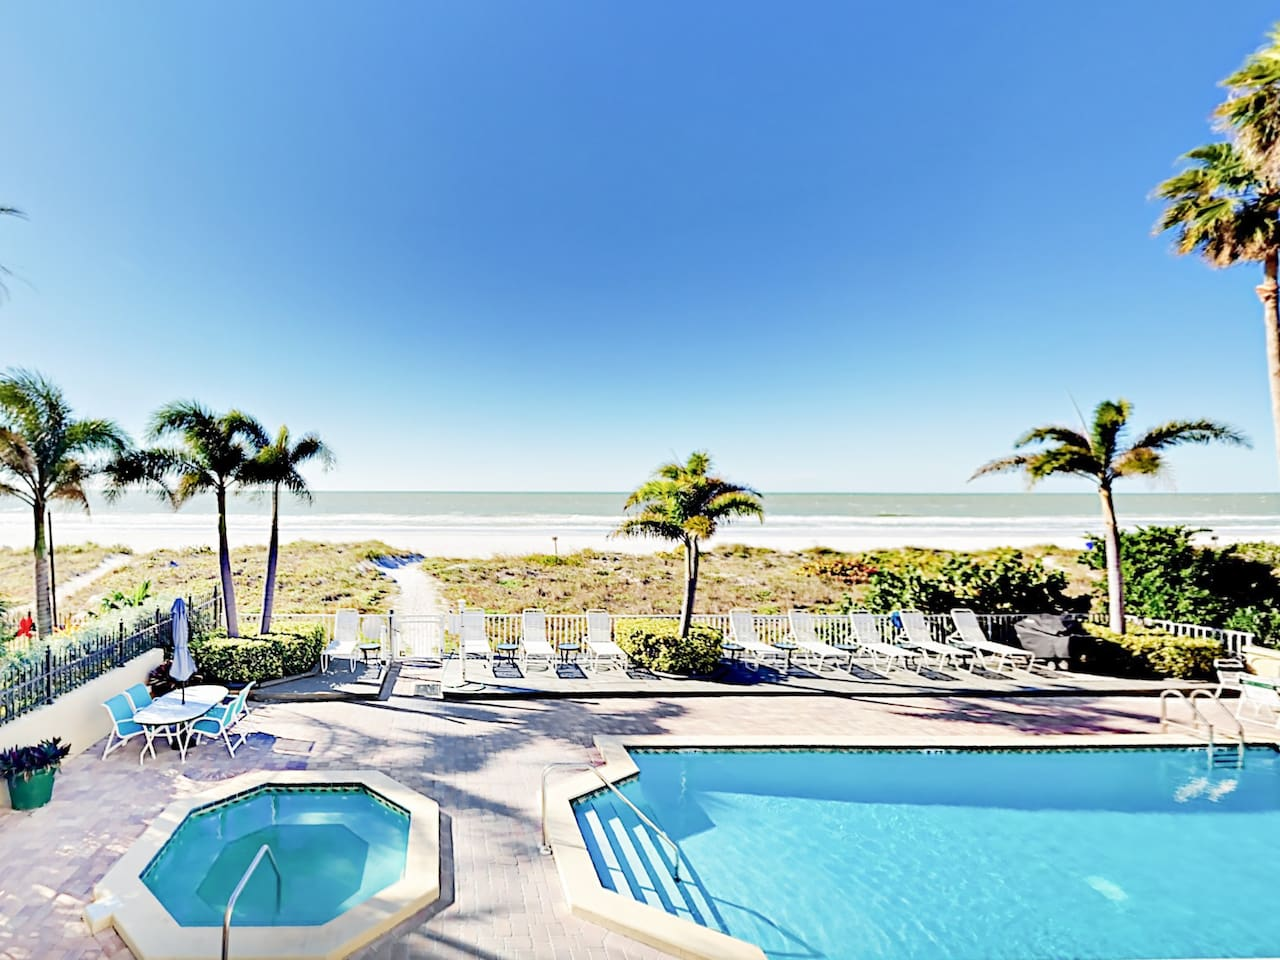 Welcome to Indian Rocks Beach! Your private balcony overlooks the Gulf of Mexico and the pool.